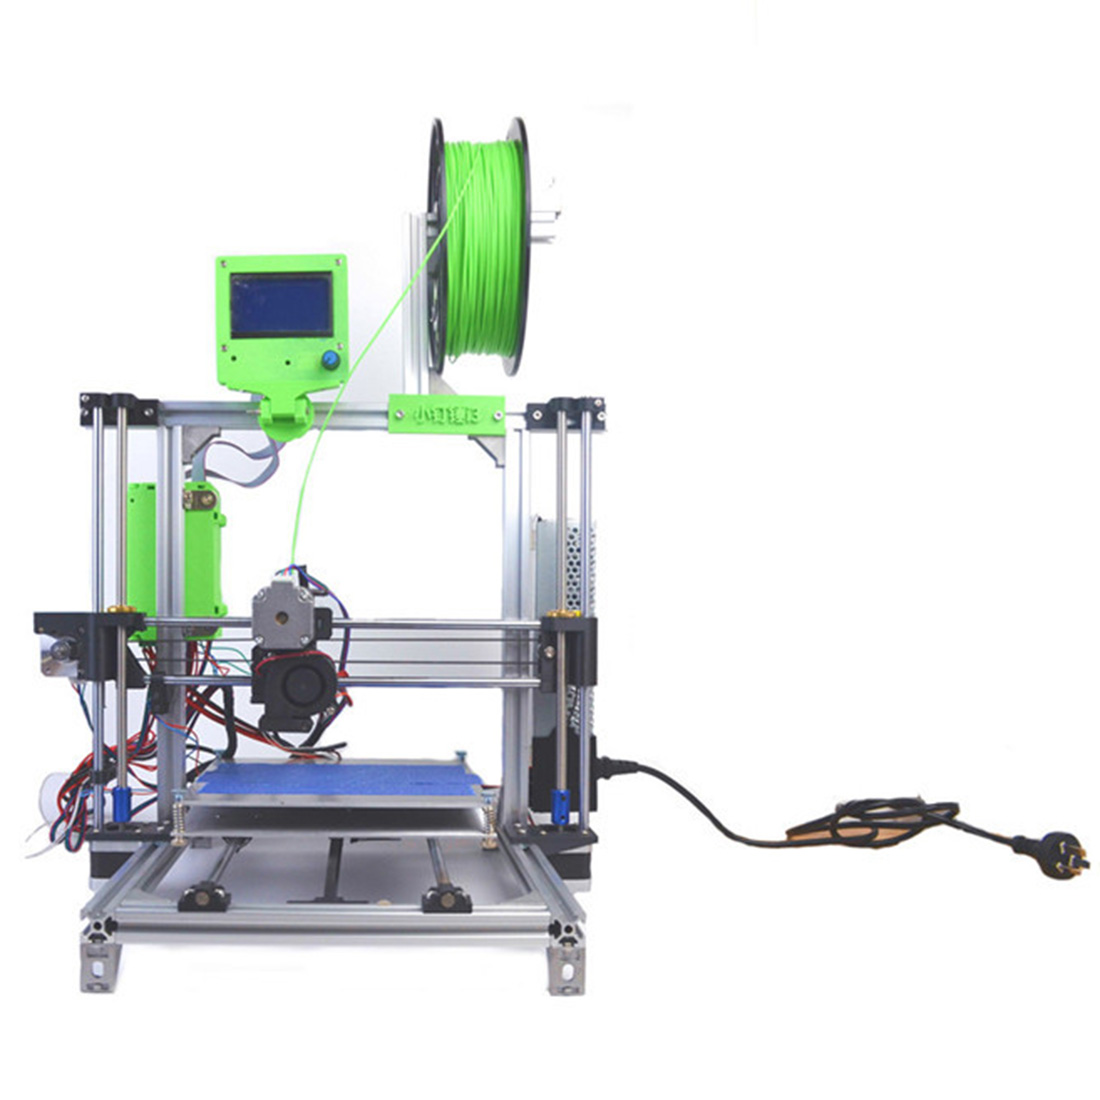 DIY 3D Printer Upgraded Aluminum Frame Printing Kit Programmable Toy Experiment Science Accessories Kits